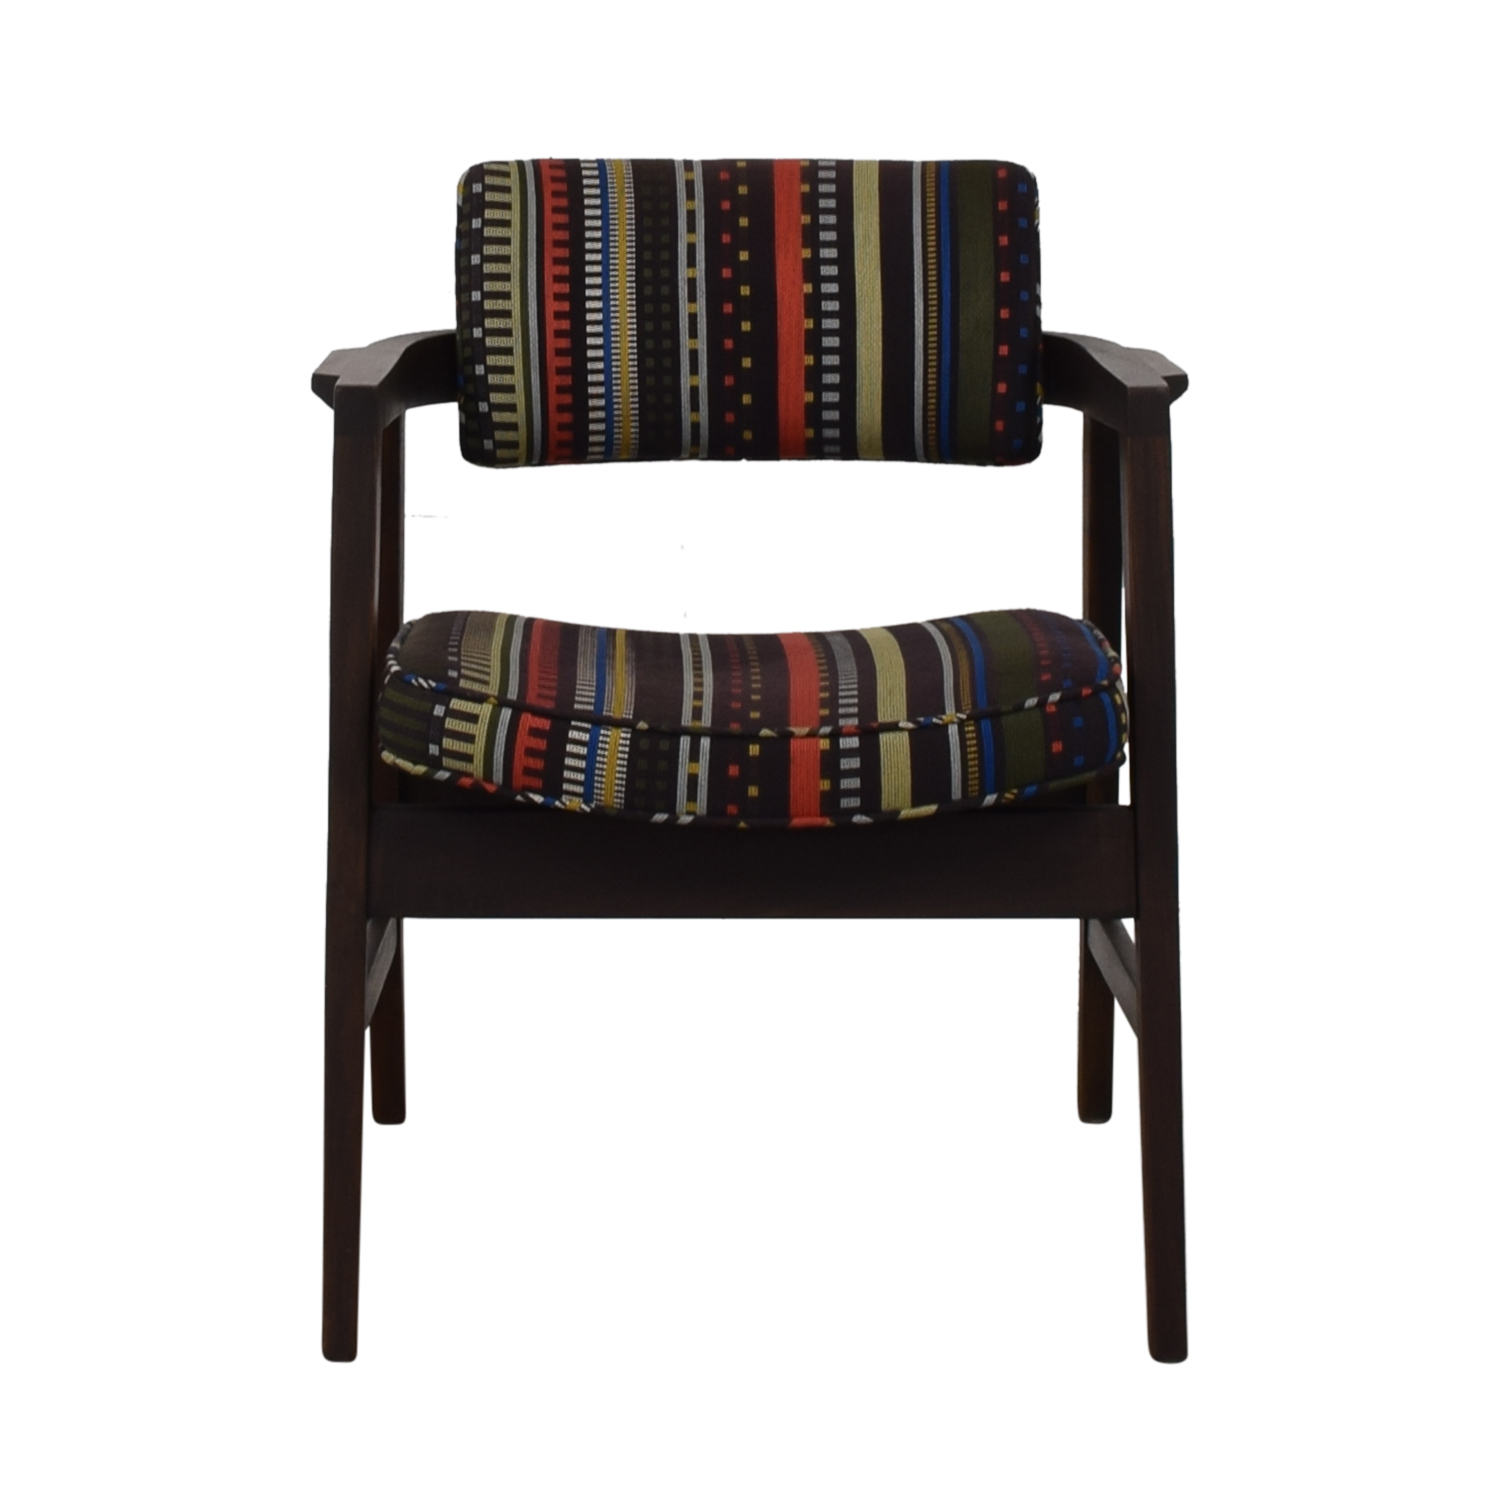 Paul Smith Paul Smith Multi-Color Striped Accent Chair used